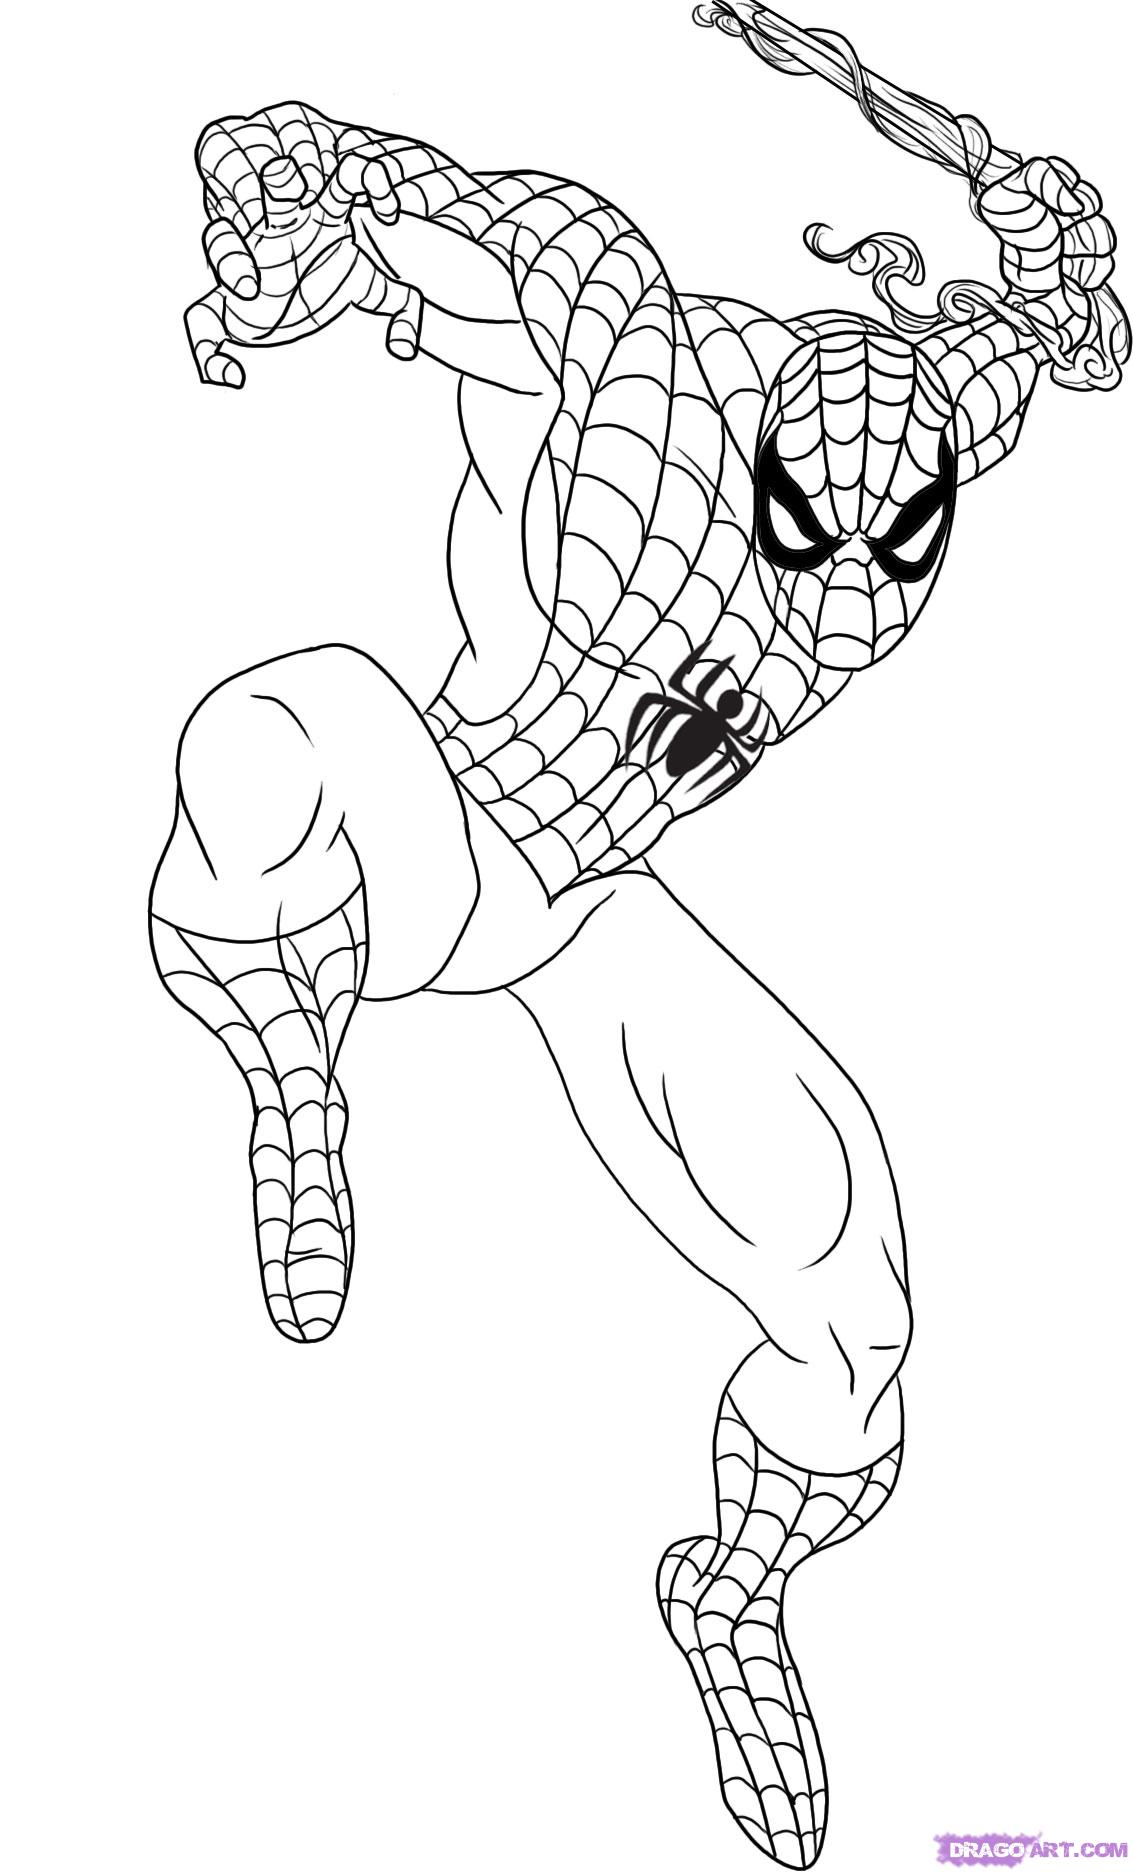 Drawn spider-man Man How  to Spiderman